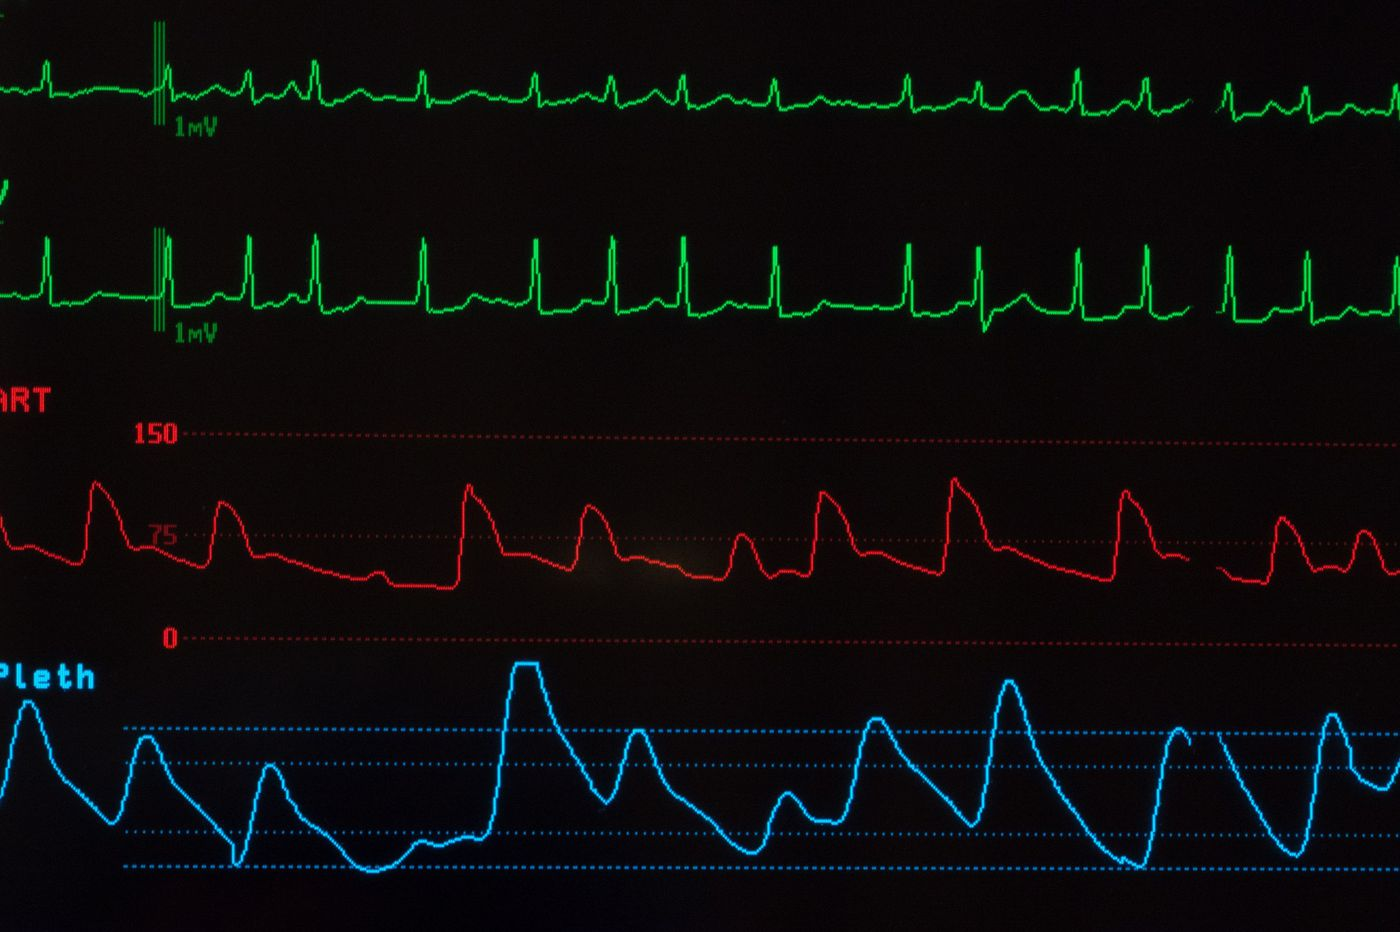 Watchman cardiac device: Another side of the story